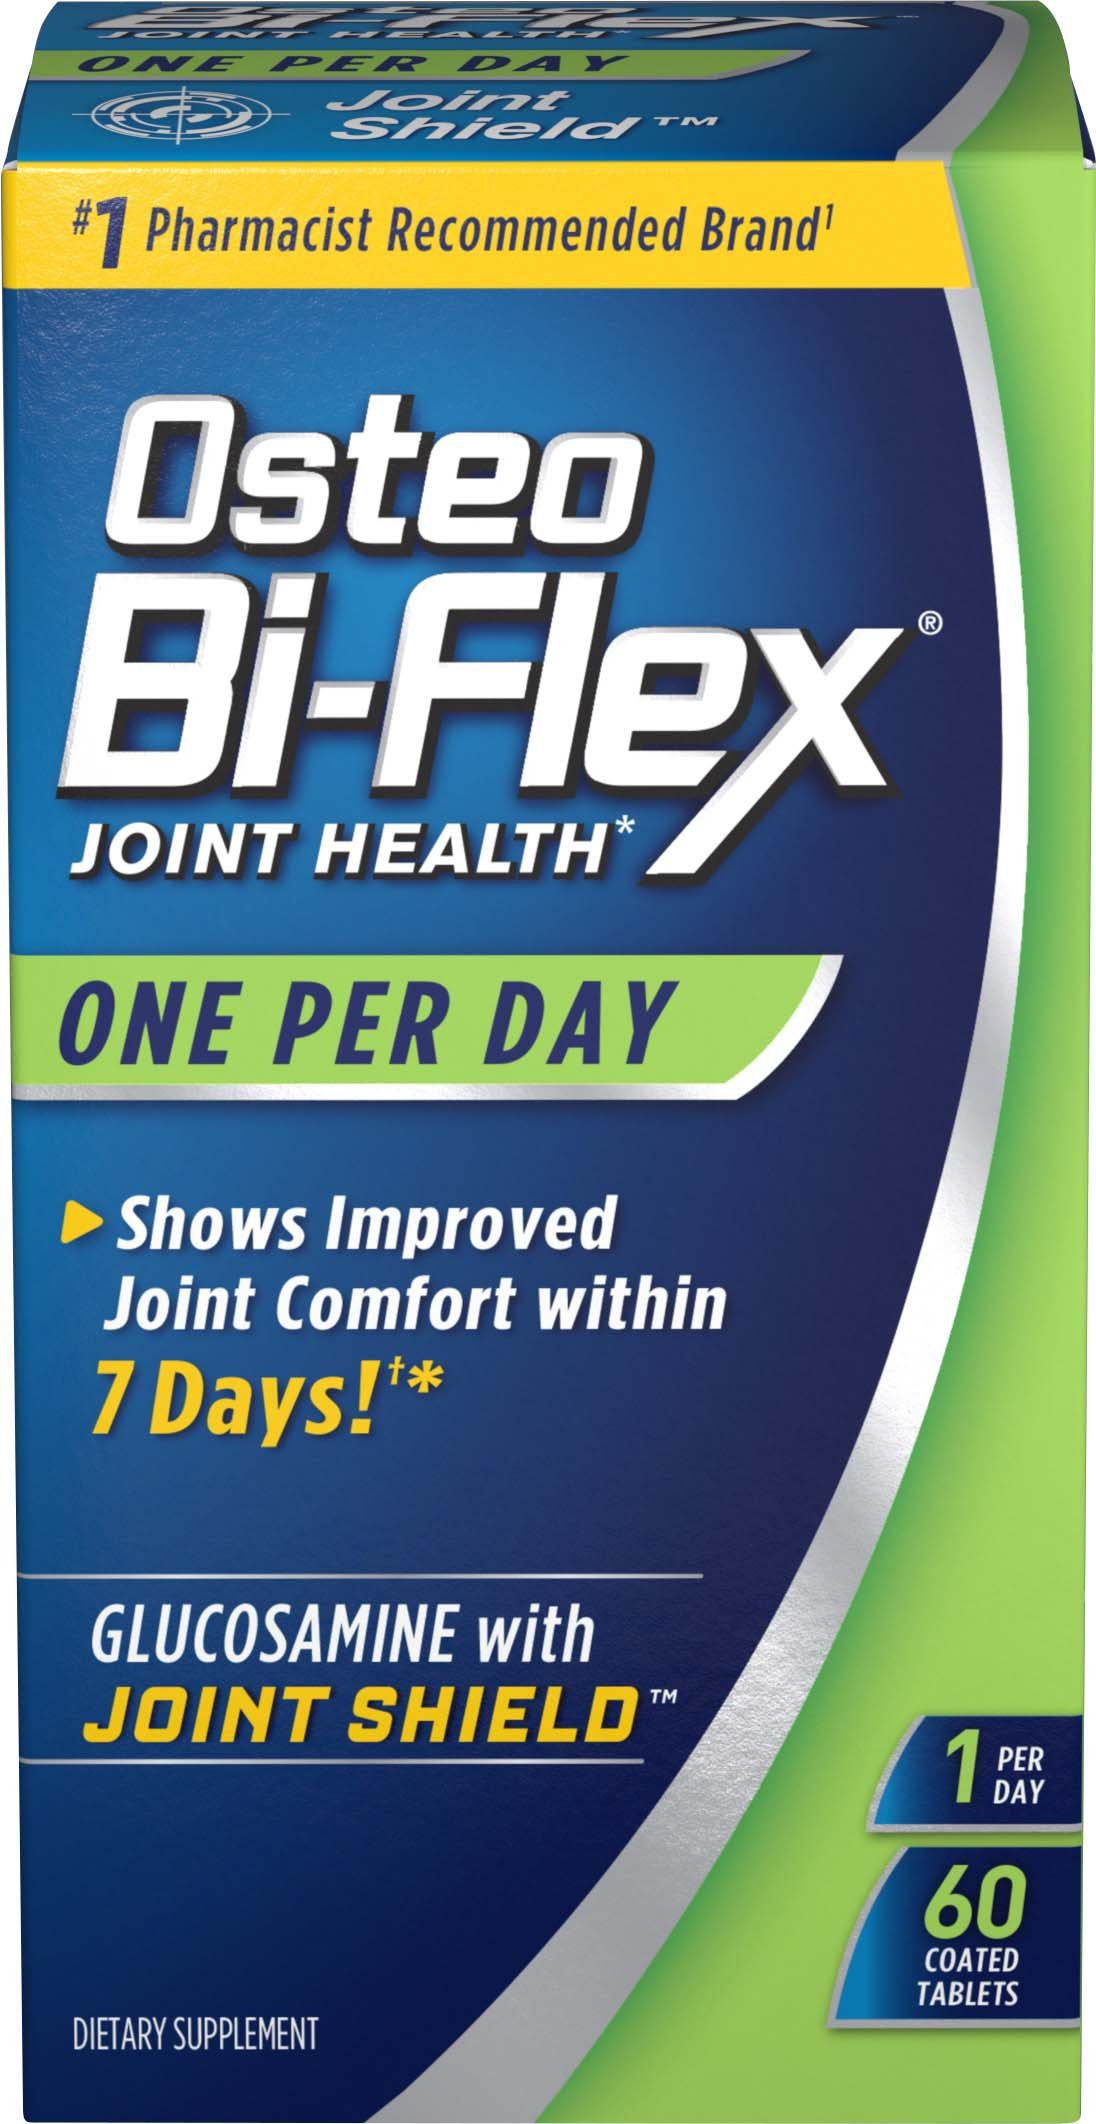 Osteo BiFlex One Per Day Glucosamine Joint Shield Dietary Supplement, Helps Strengthen Joints, 60 Count by Osteo Bi-Flex